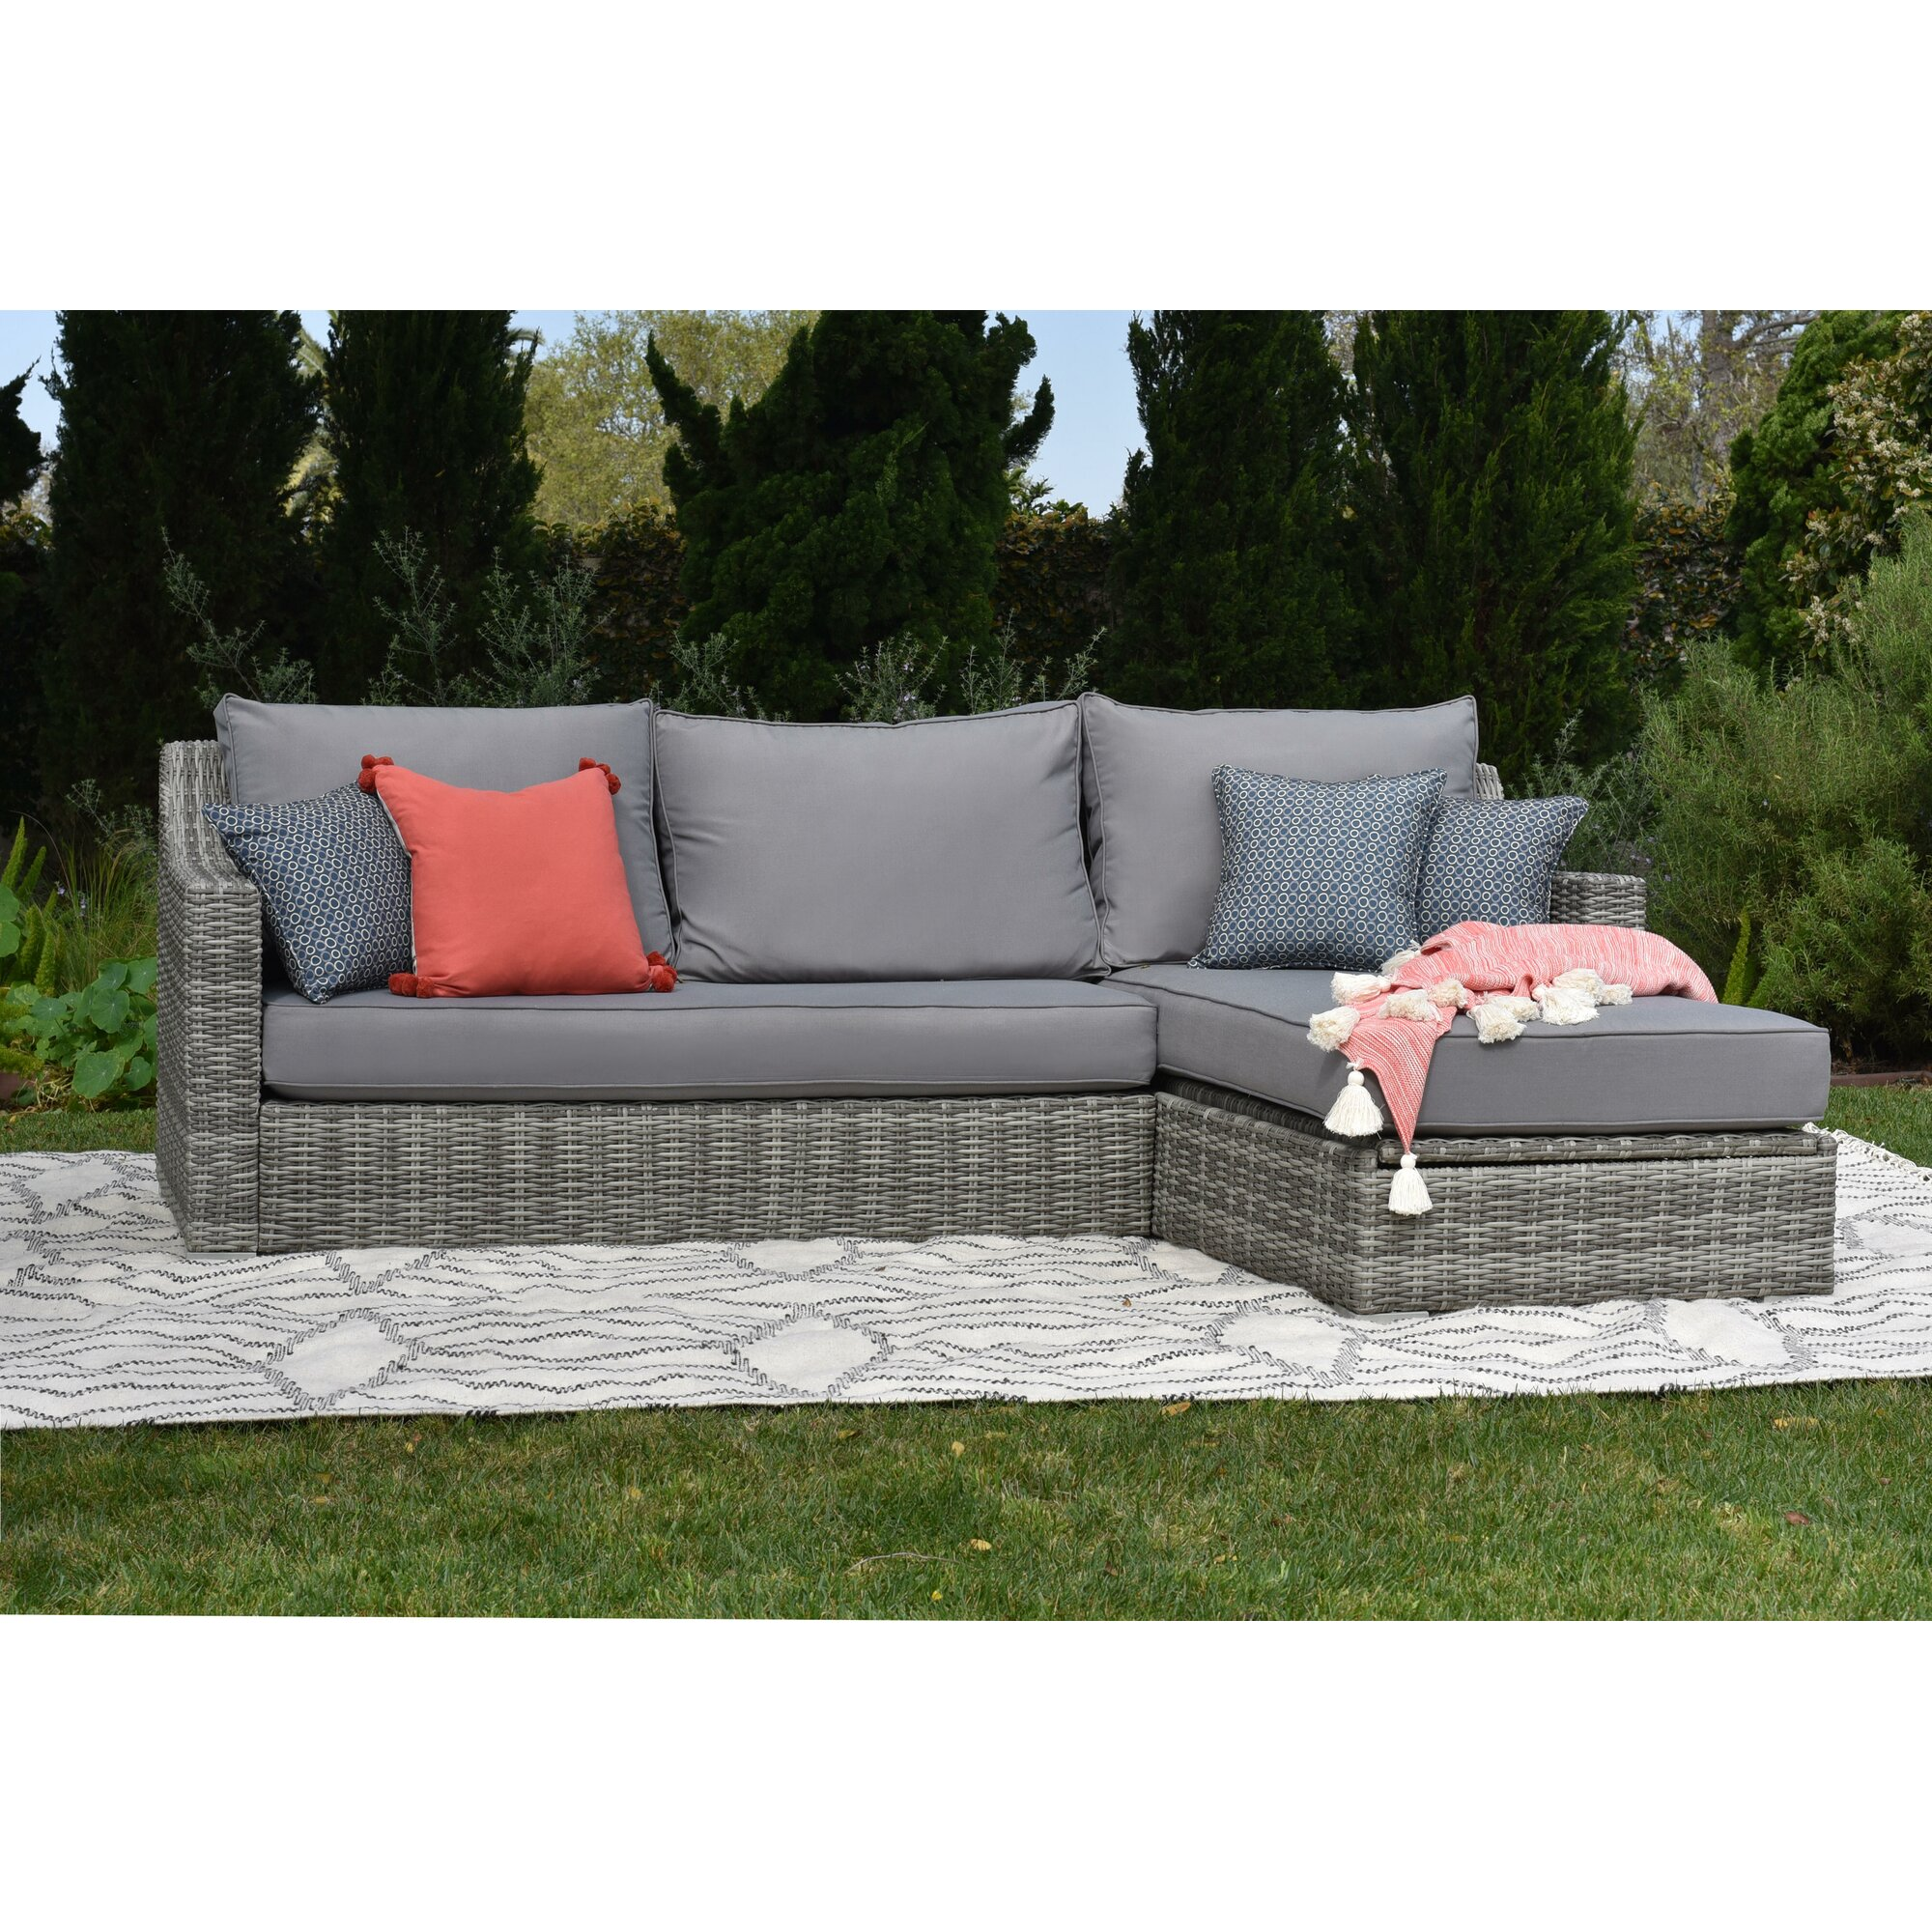 Elle Decor Vallauris Storage Sectional with Cushions & Reviews